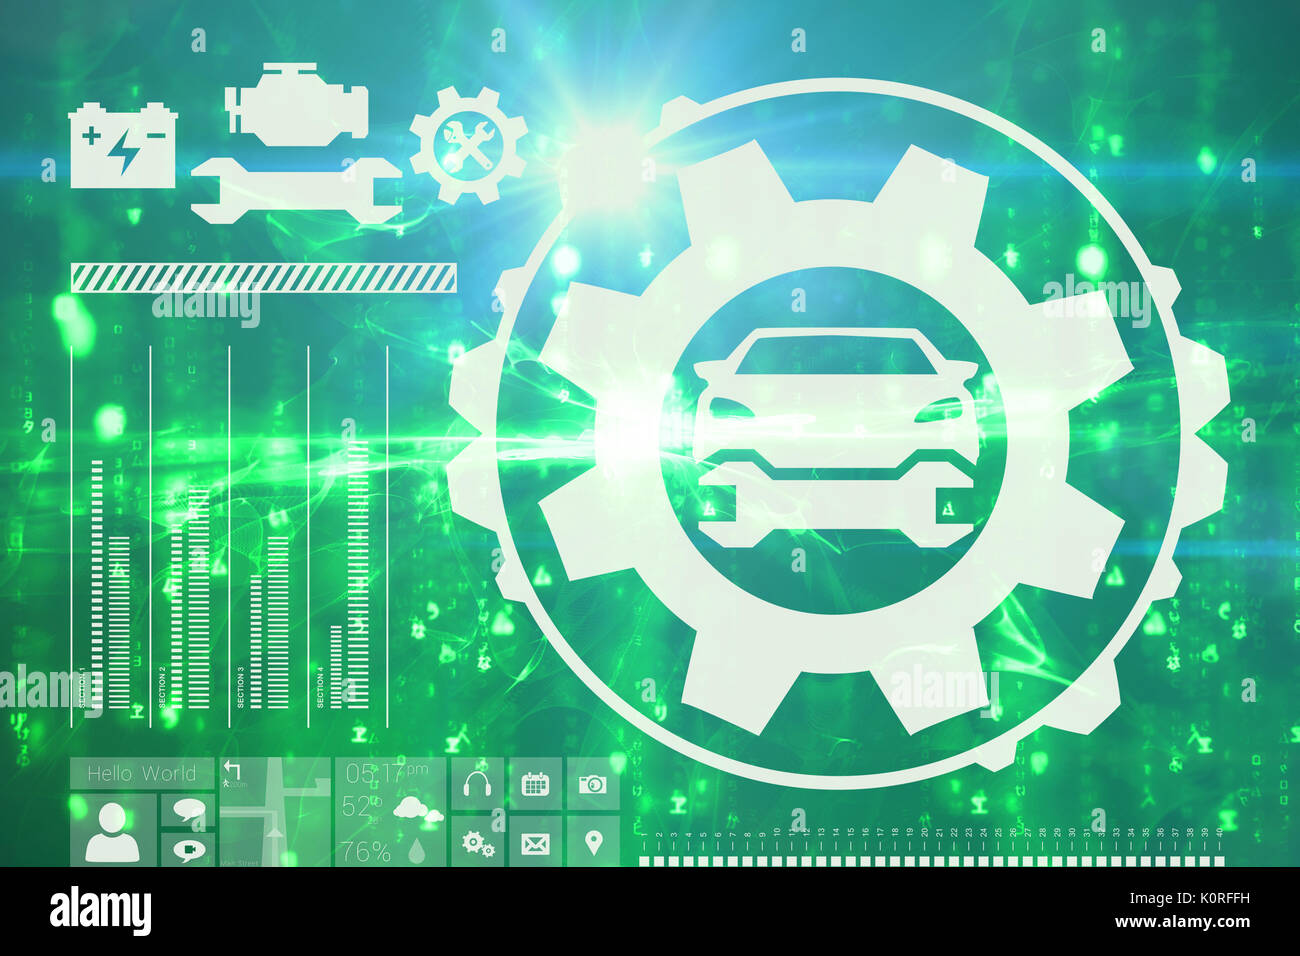 Digital image of tools and car against digitally generated image of abstract pattern Stock Photo